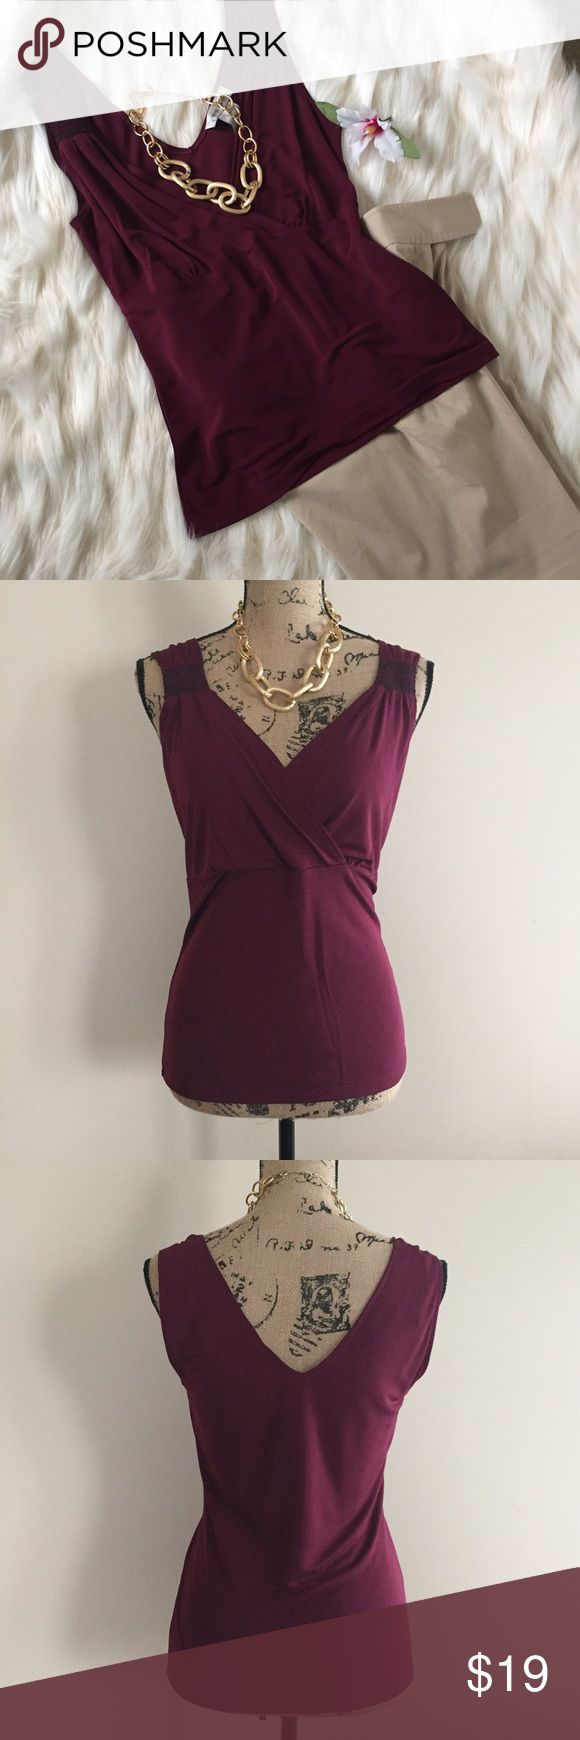 👠 Nine West cranberry tank 👠 Pretty cranberry tank from Nine West has a tucked and seamed bust line adding a feminine look. Brown crisscrossing detailing at shoulders. Size S. Excellent condition. Nine West Tops Blouses